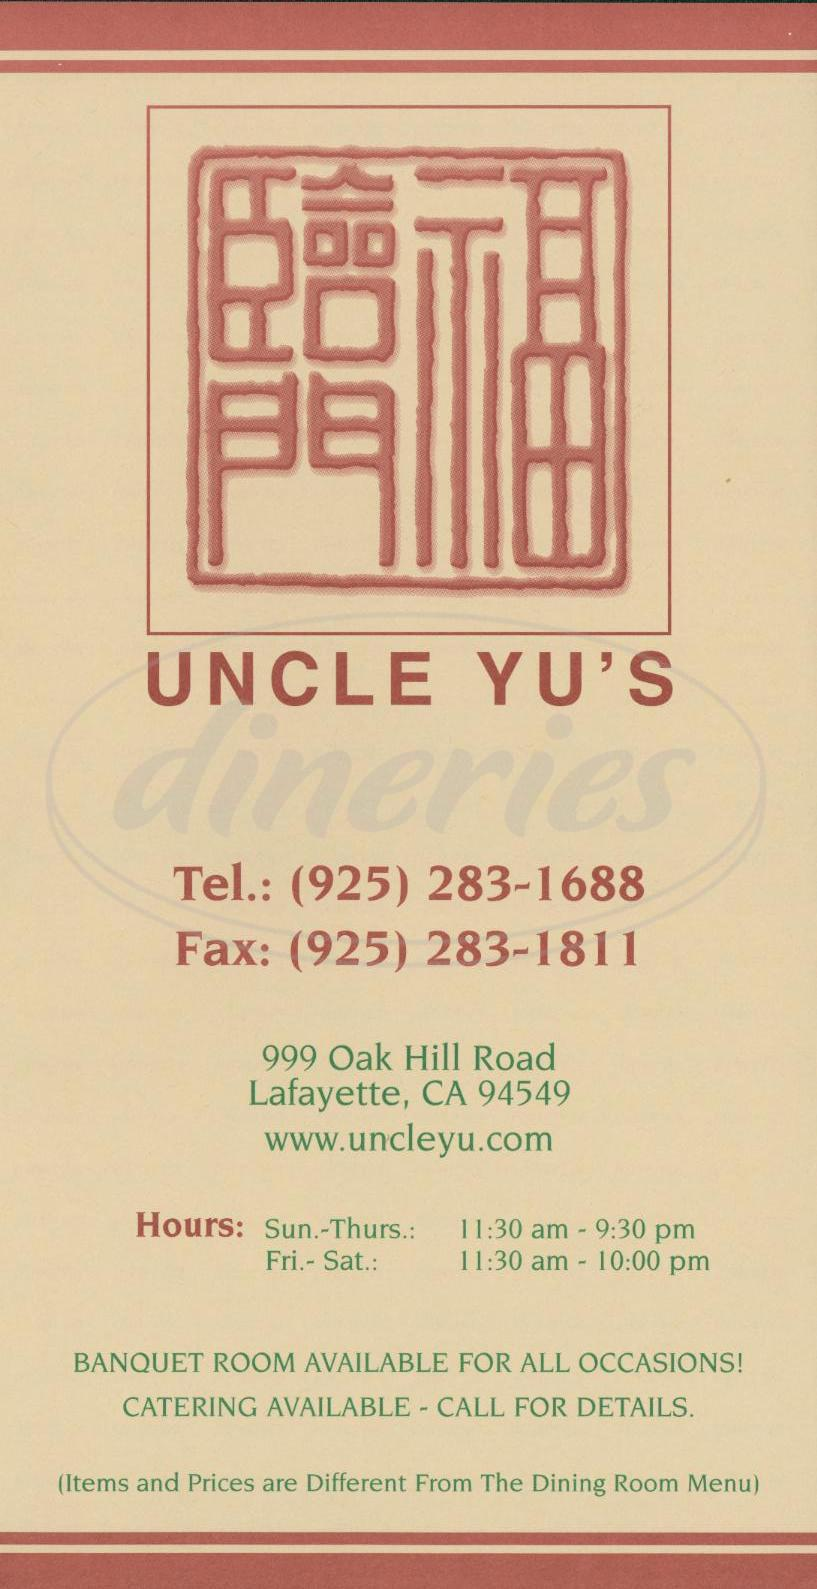 menu for Uncle Yu's